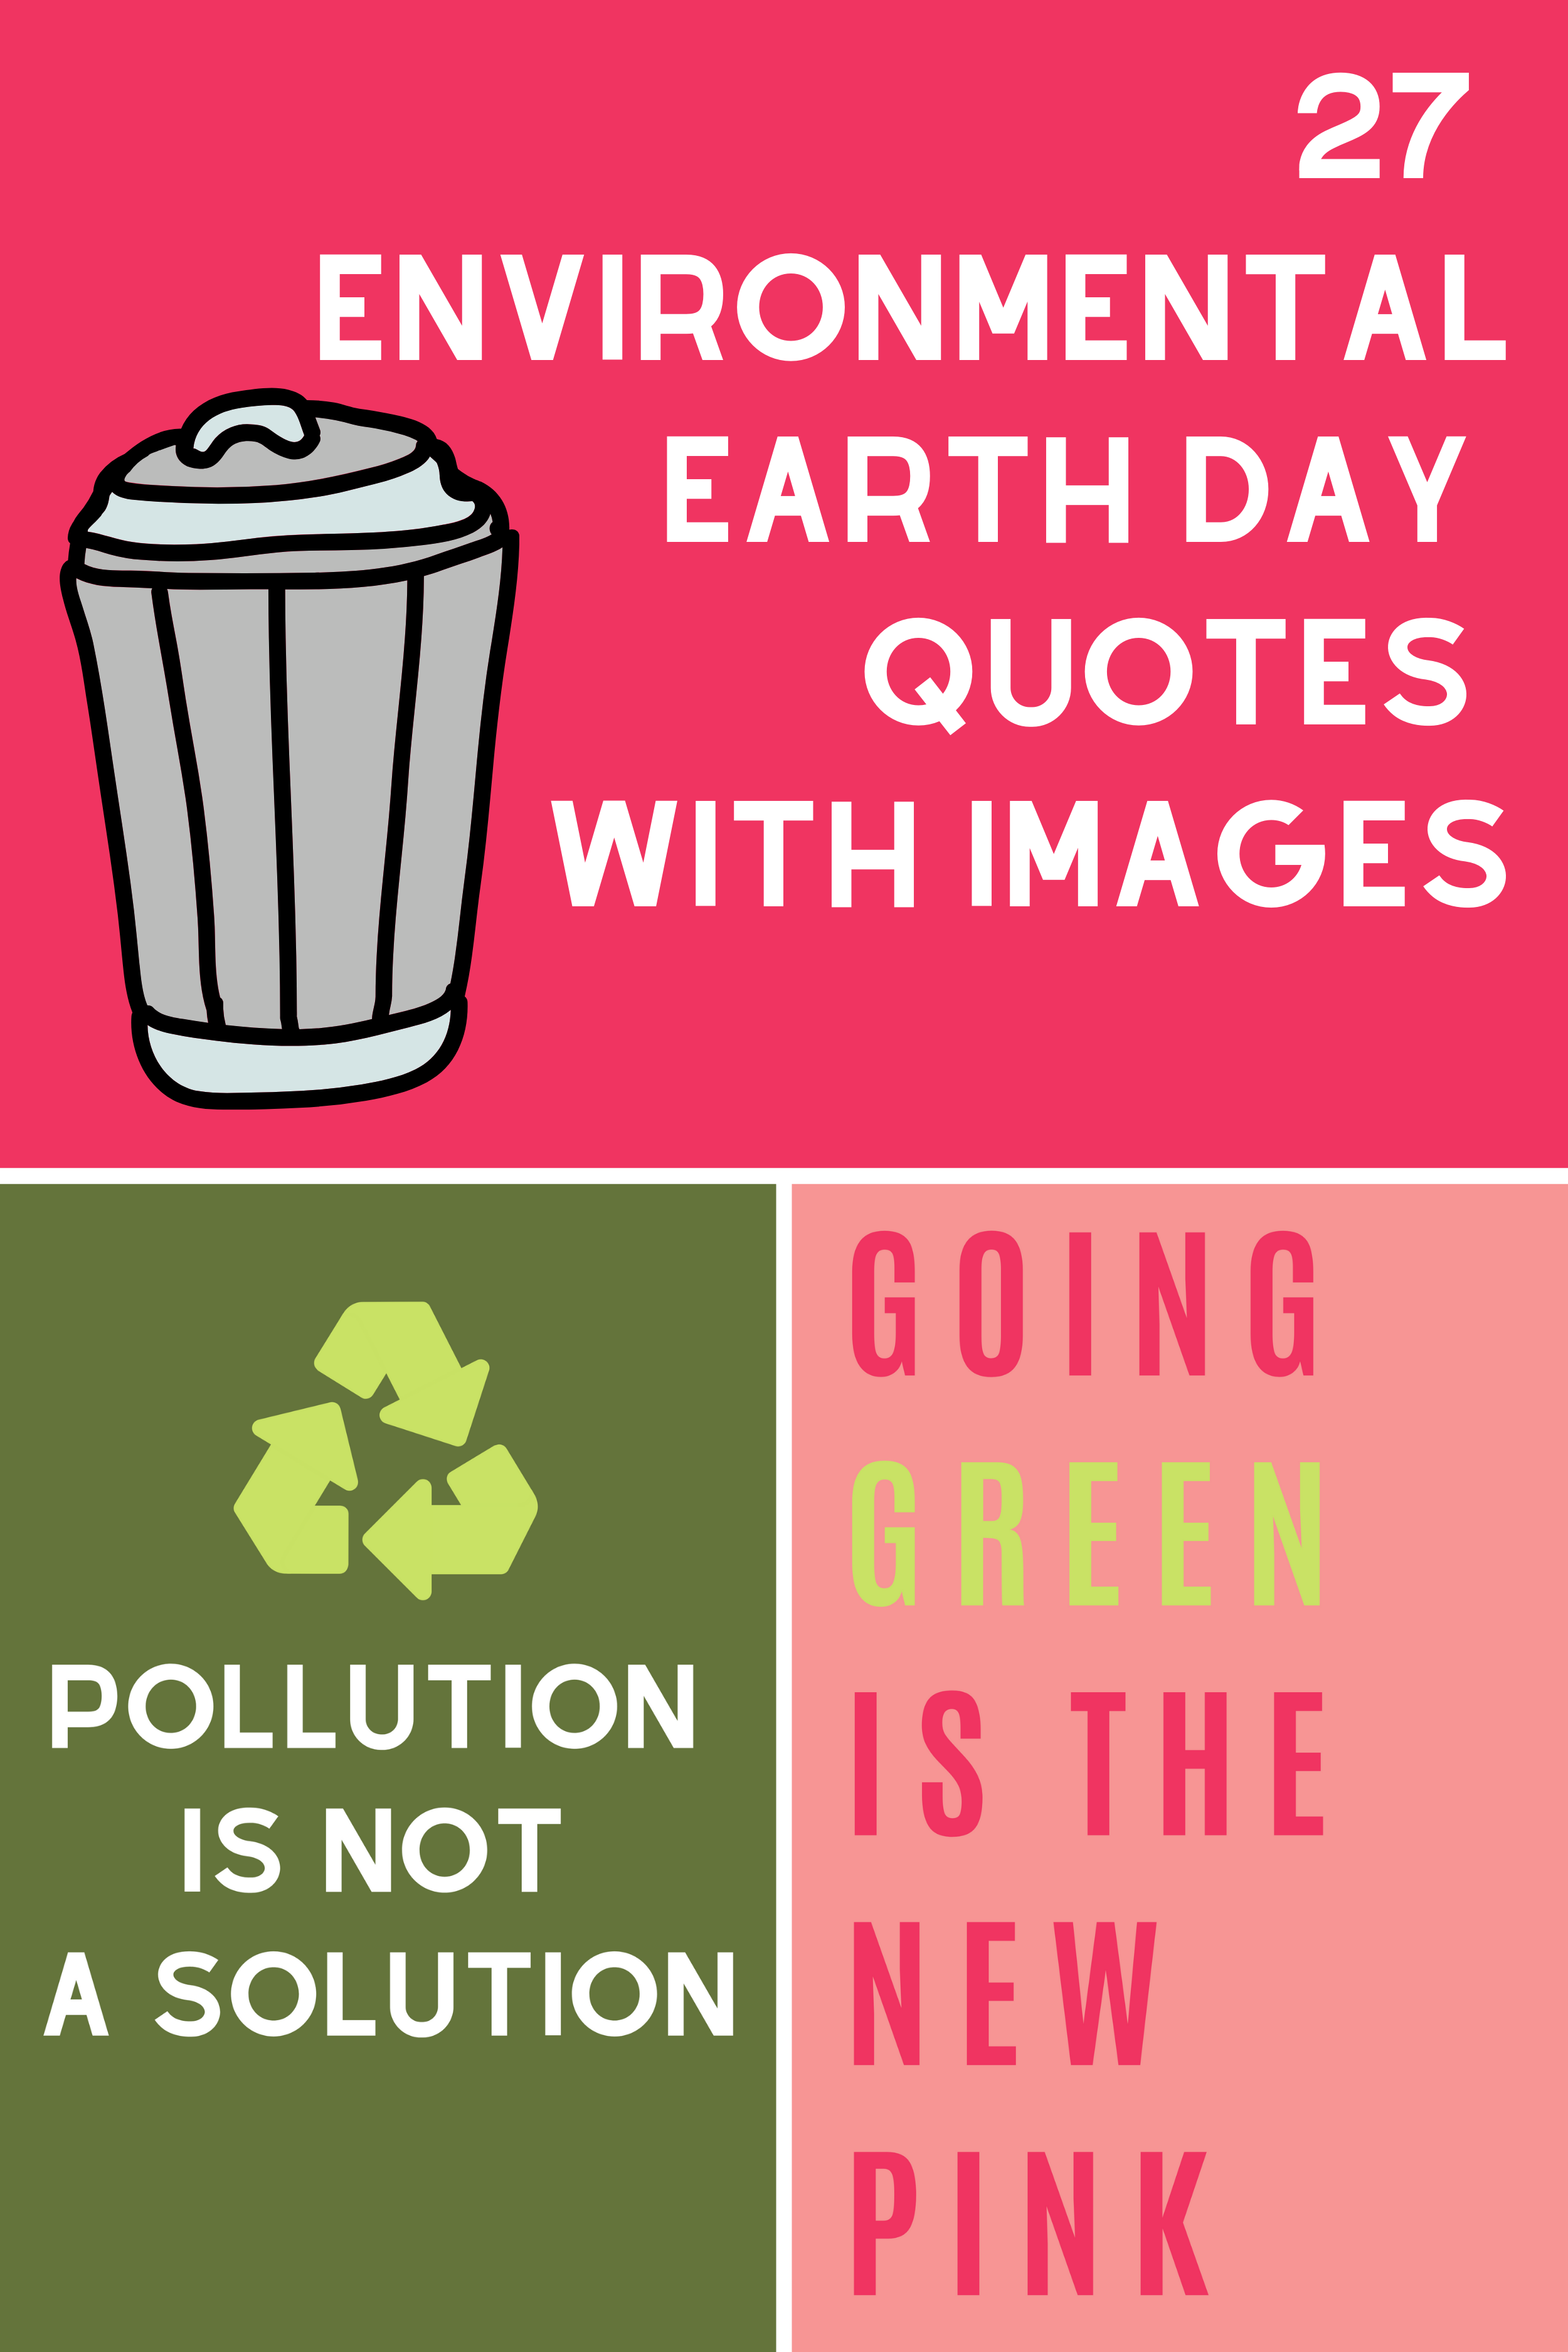 Earth Day Quotes with Images